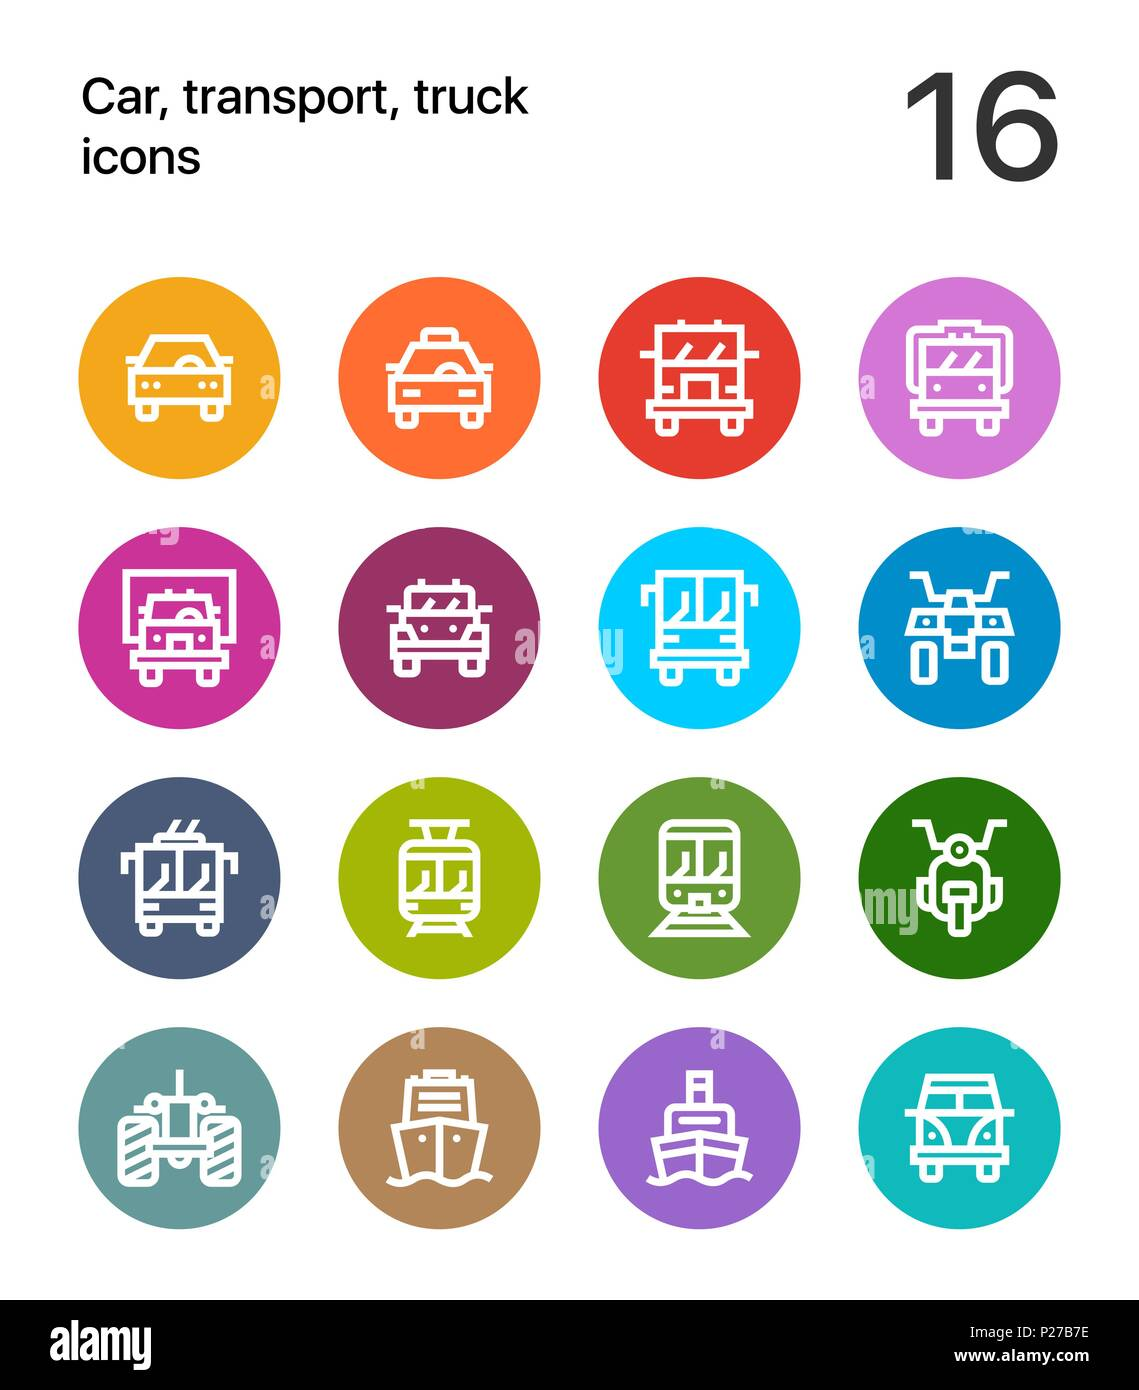 Colorful Car, transport, vehicle, truck, train vector flat line icons for web and mobile applications - Stock Image